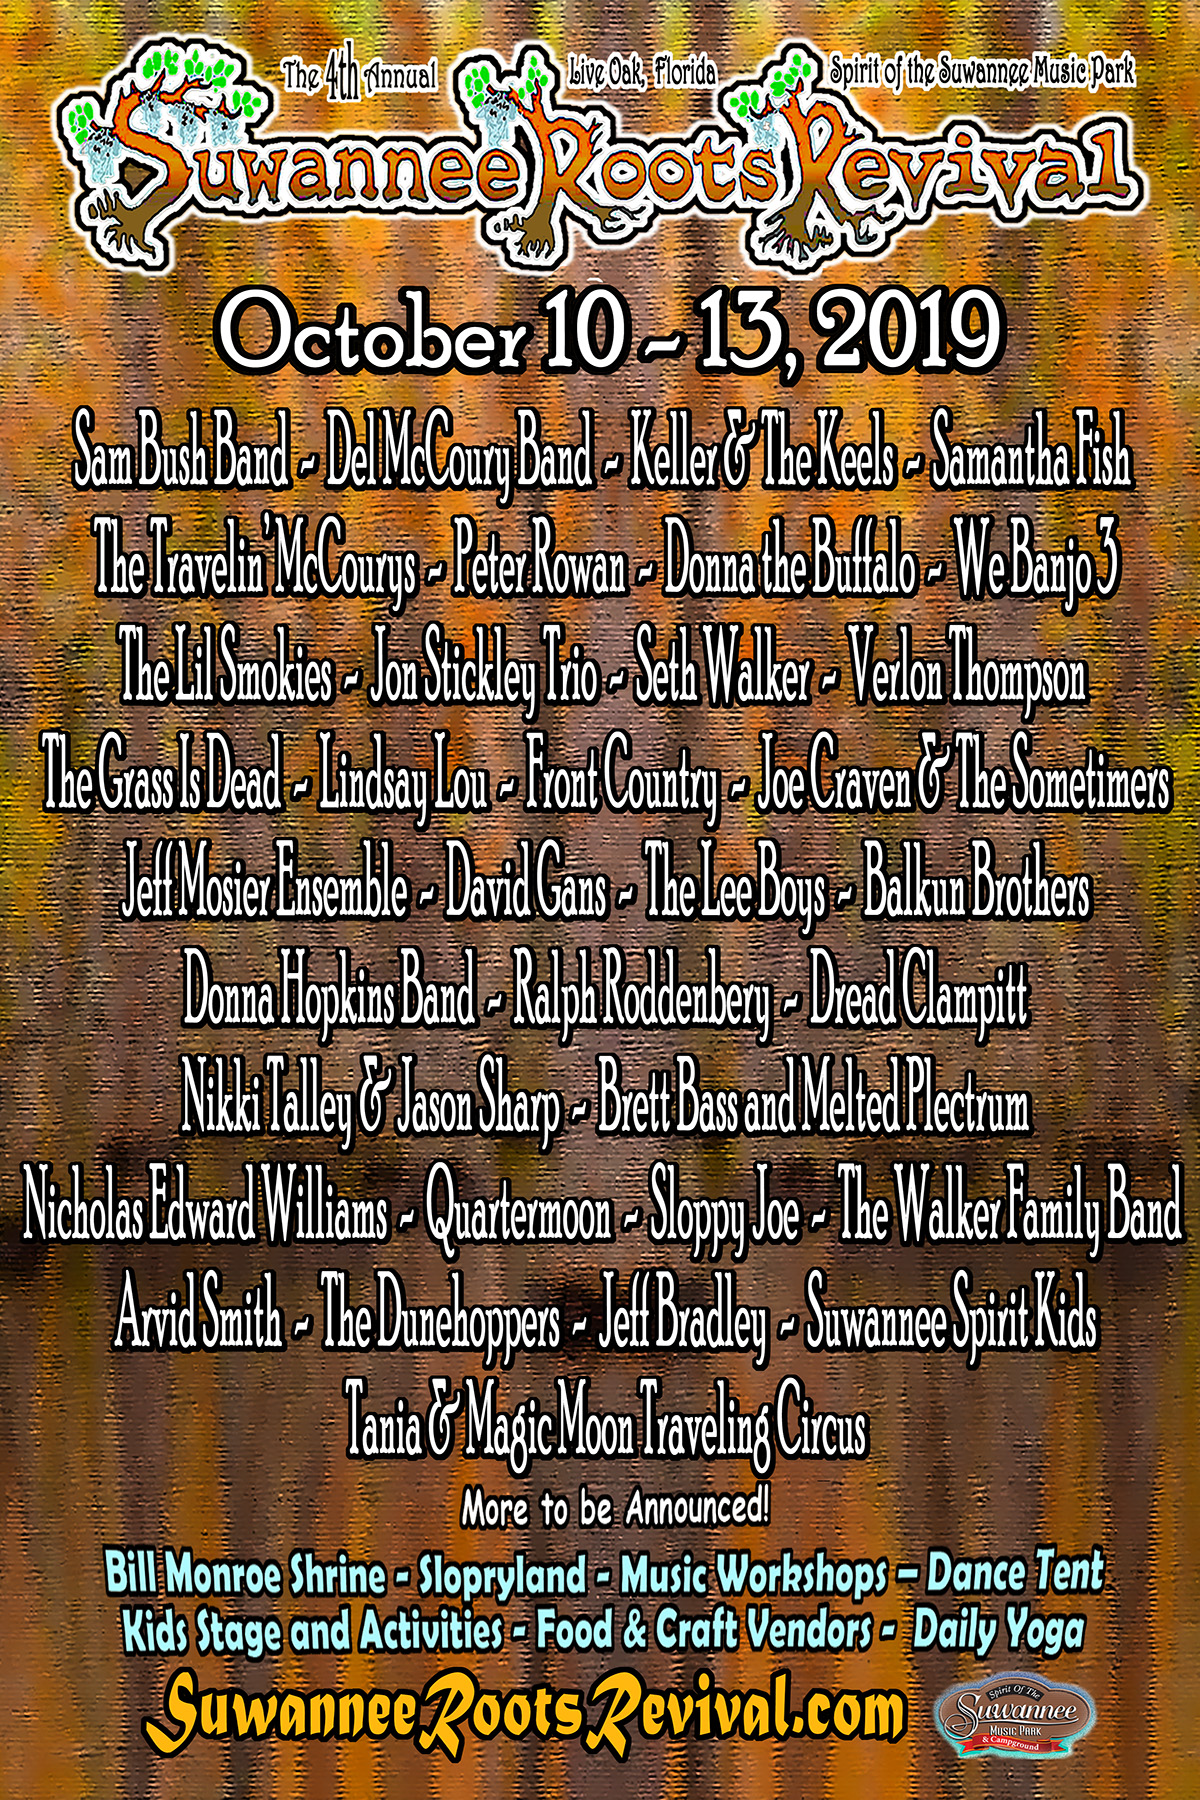 Suwannee Roots Revival Pre-Party & Daily Schedule